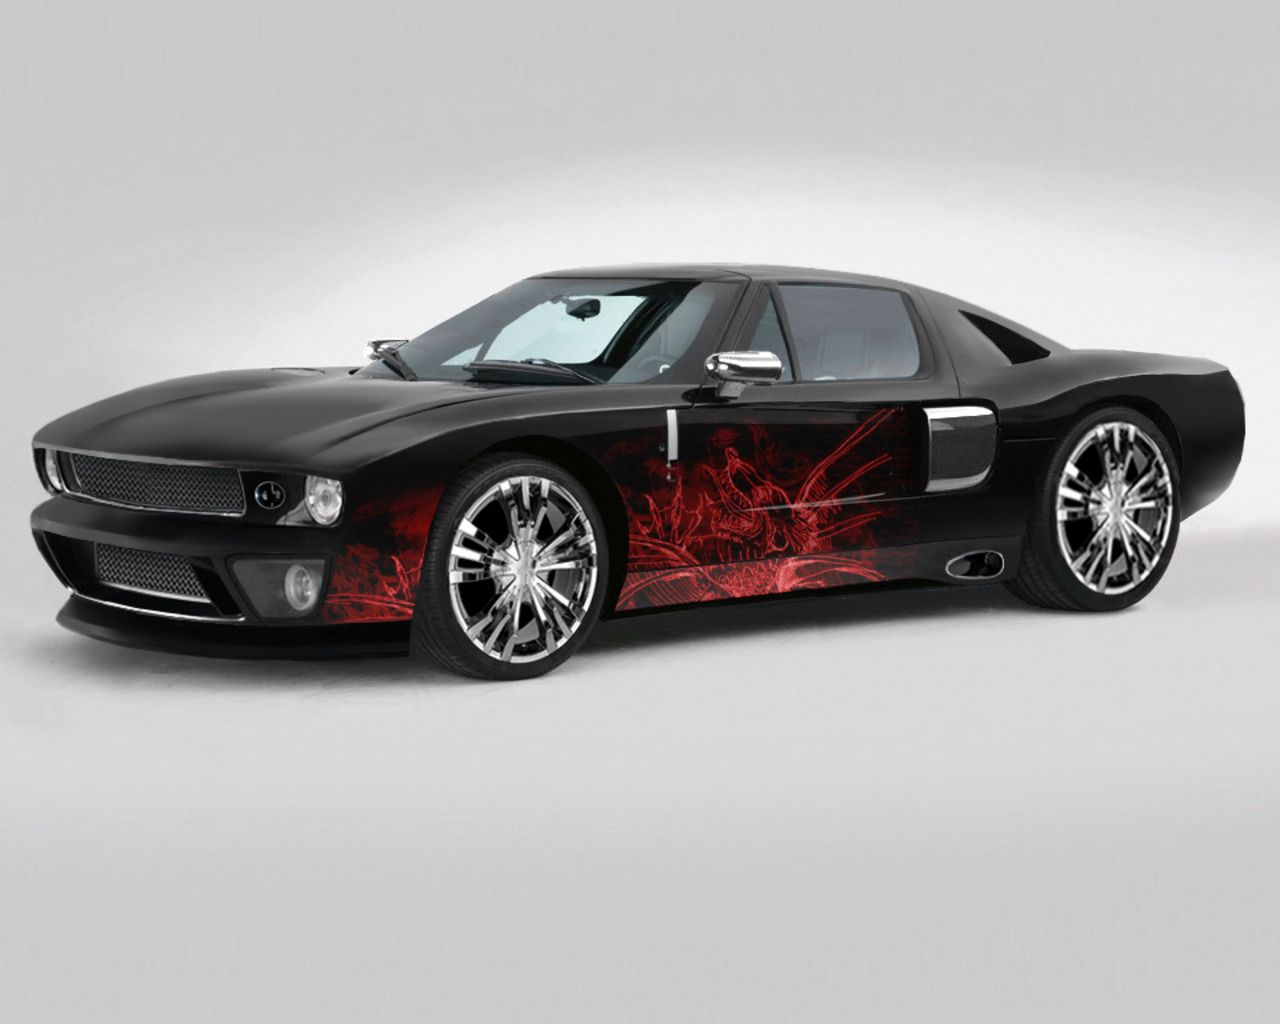 Cars Ford Mustang Shelby Gt500 1280x1024 Wallpaper Mustang Shelby Ford Mustang Shelby Ford Mustang Shelby Gt500